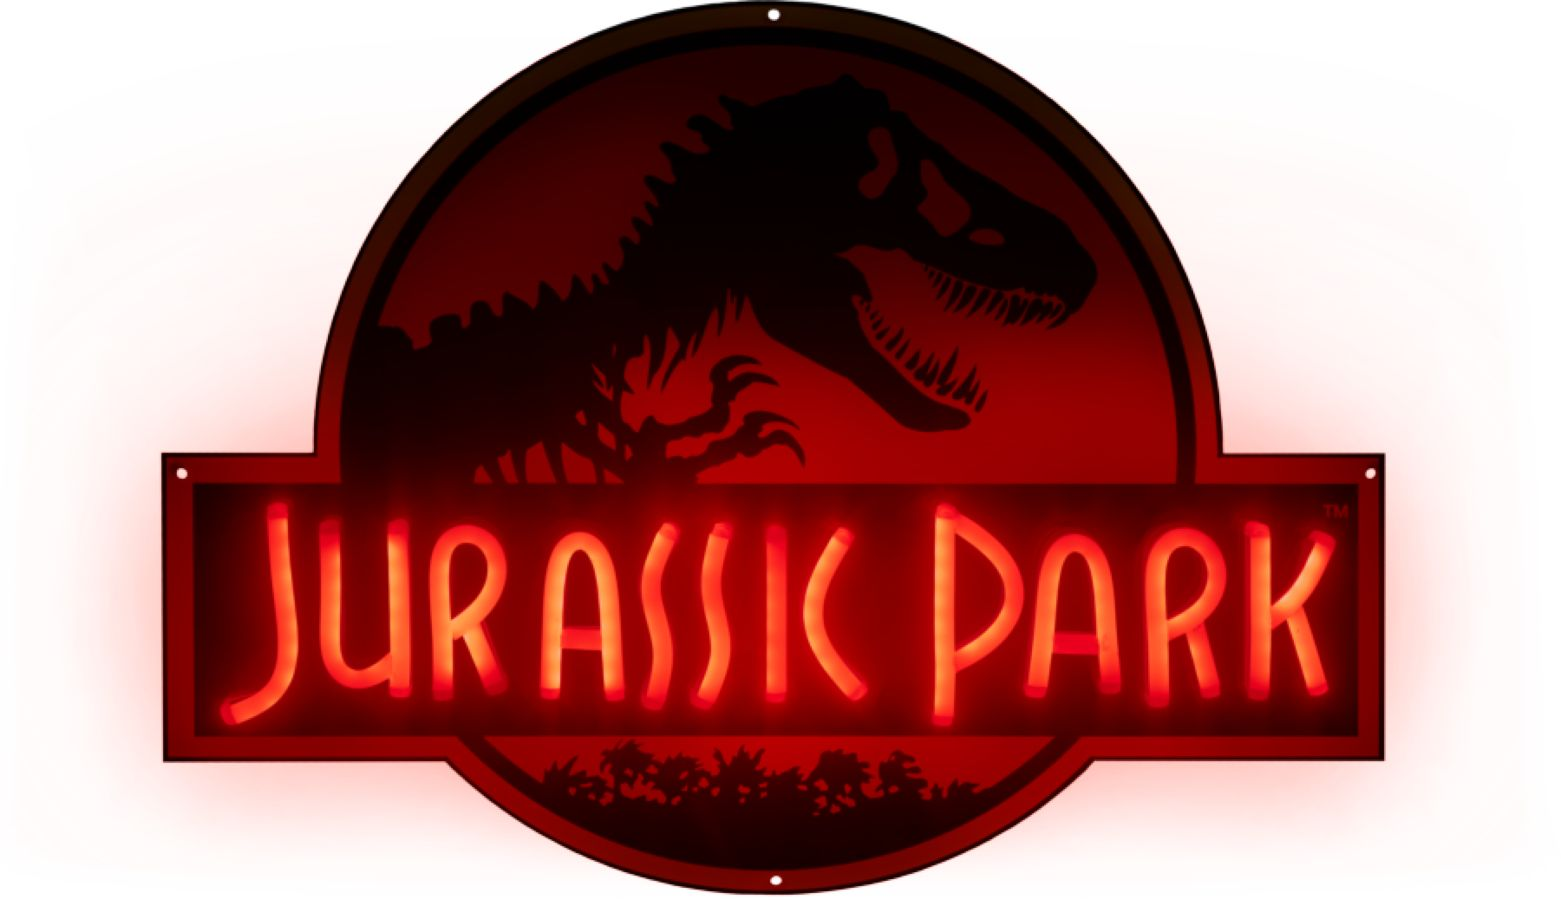 Jurassic Park - Logo Light-Up Neon Logo Sign